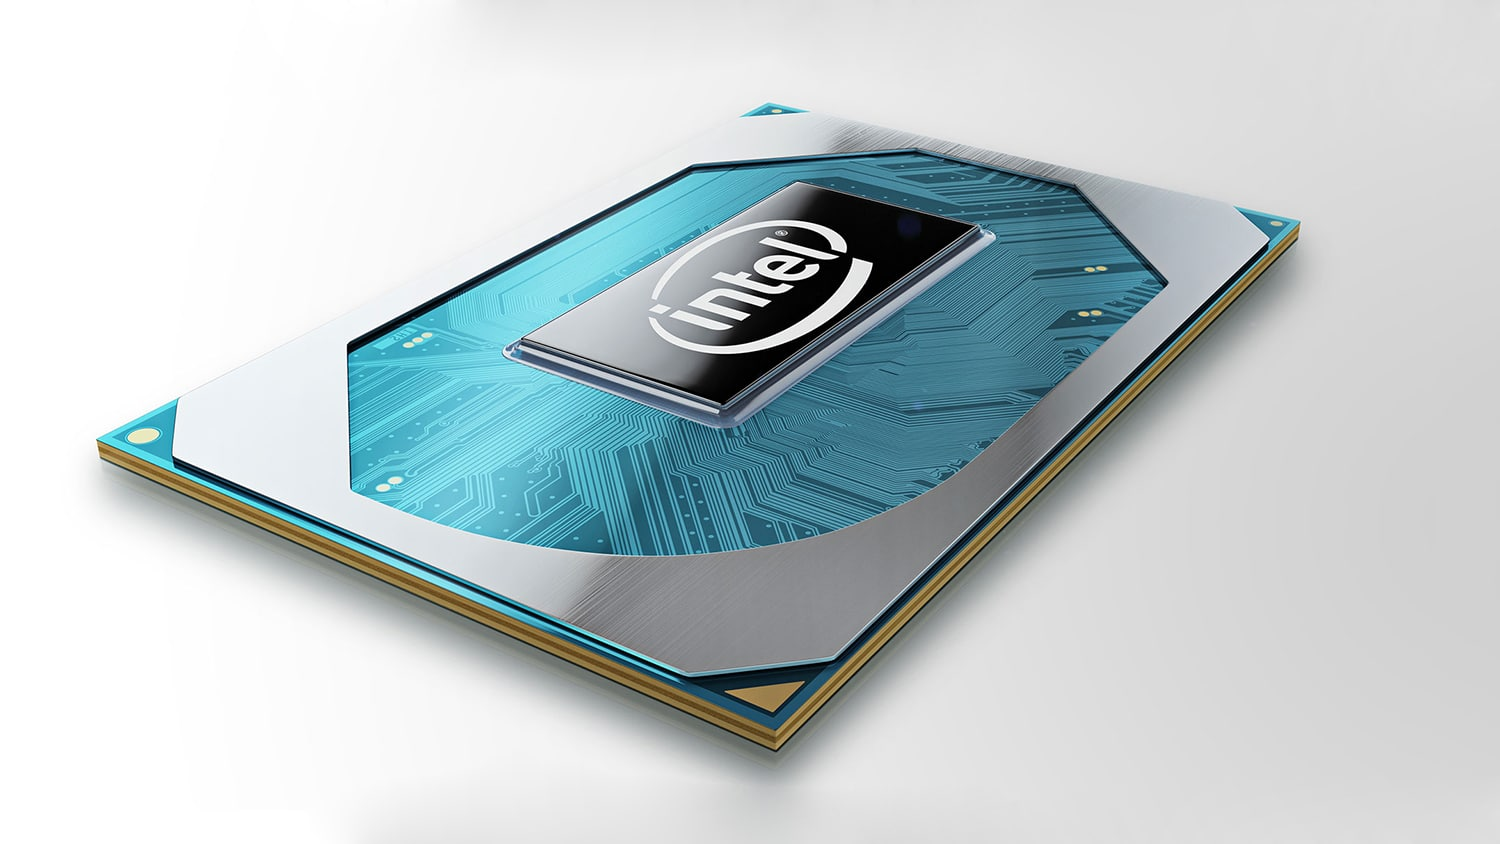 Intel's Latest 10th-gen Chips Go Up to 5.3GHz